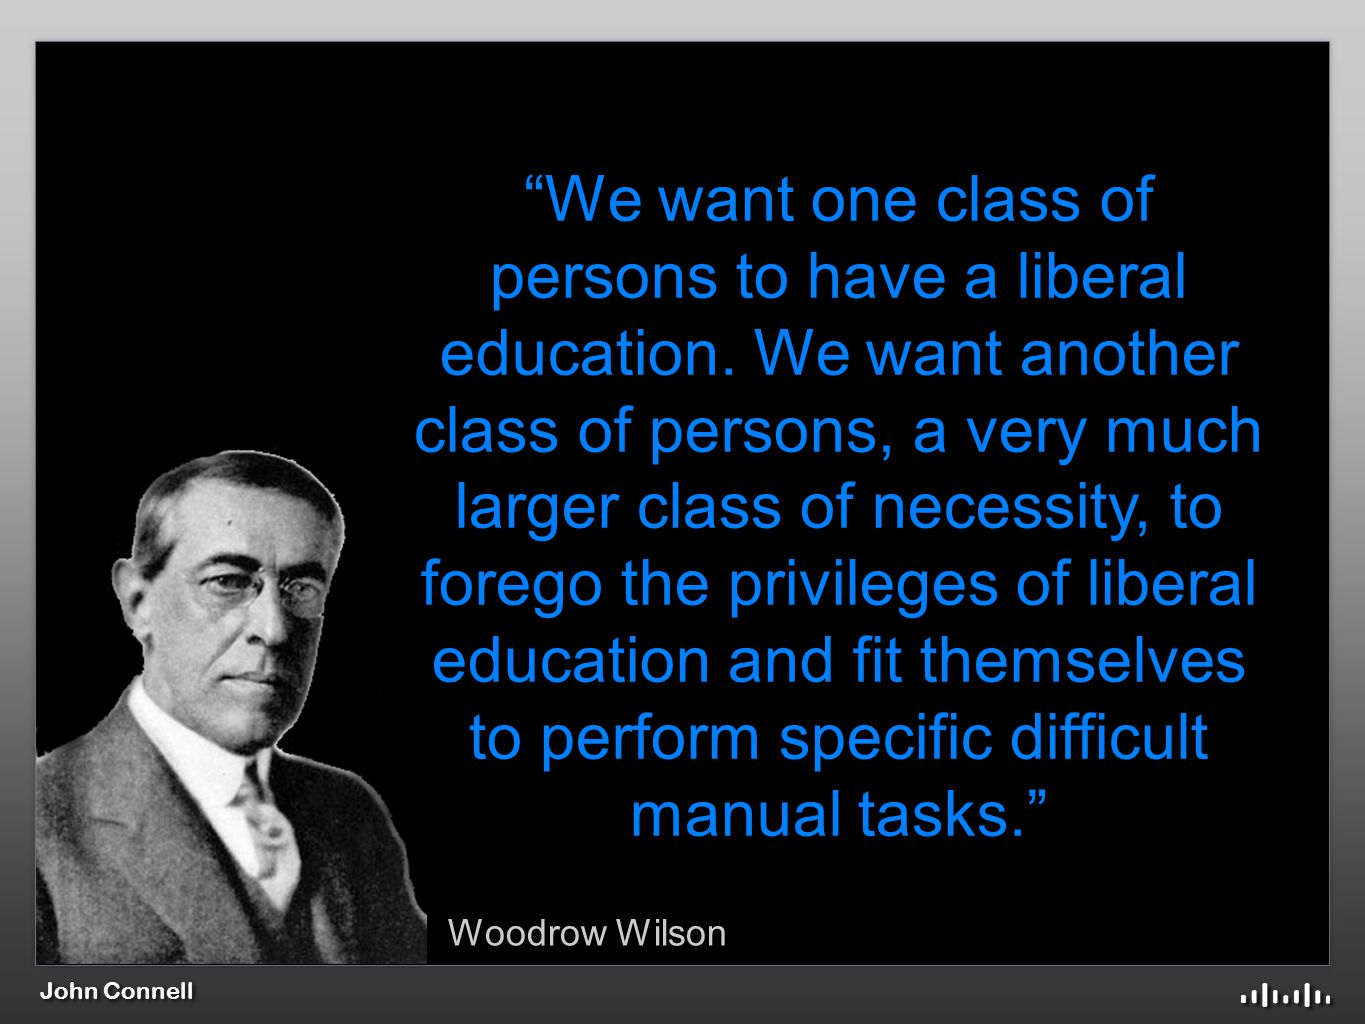 Woodrow Wilson We want one class of persons to have a liberal education.